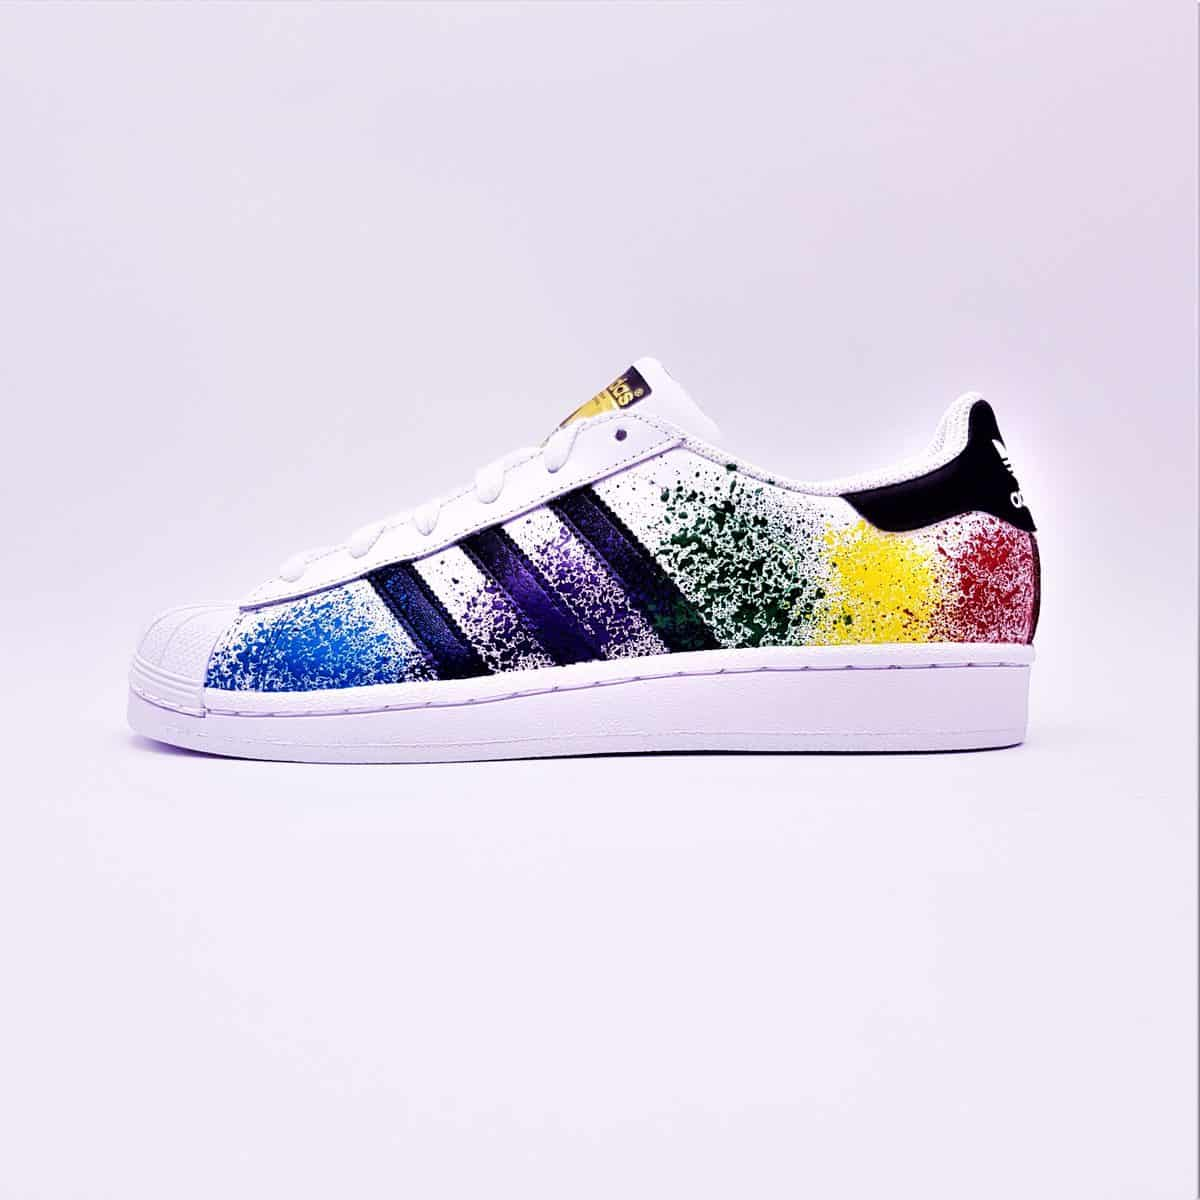 Uitgelezene Adidas Color Splash Superstar ATPIK Custom Sneakers YM-57